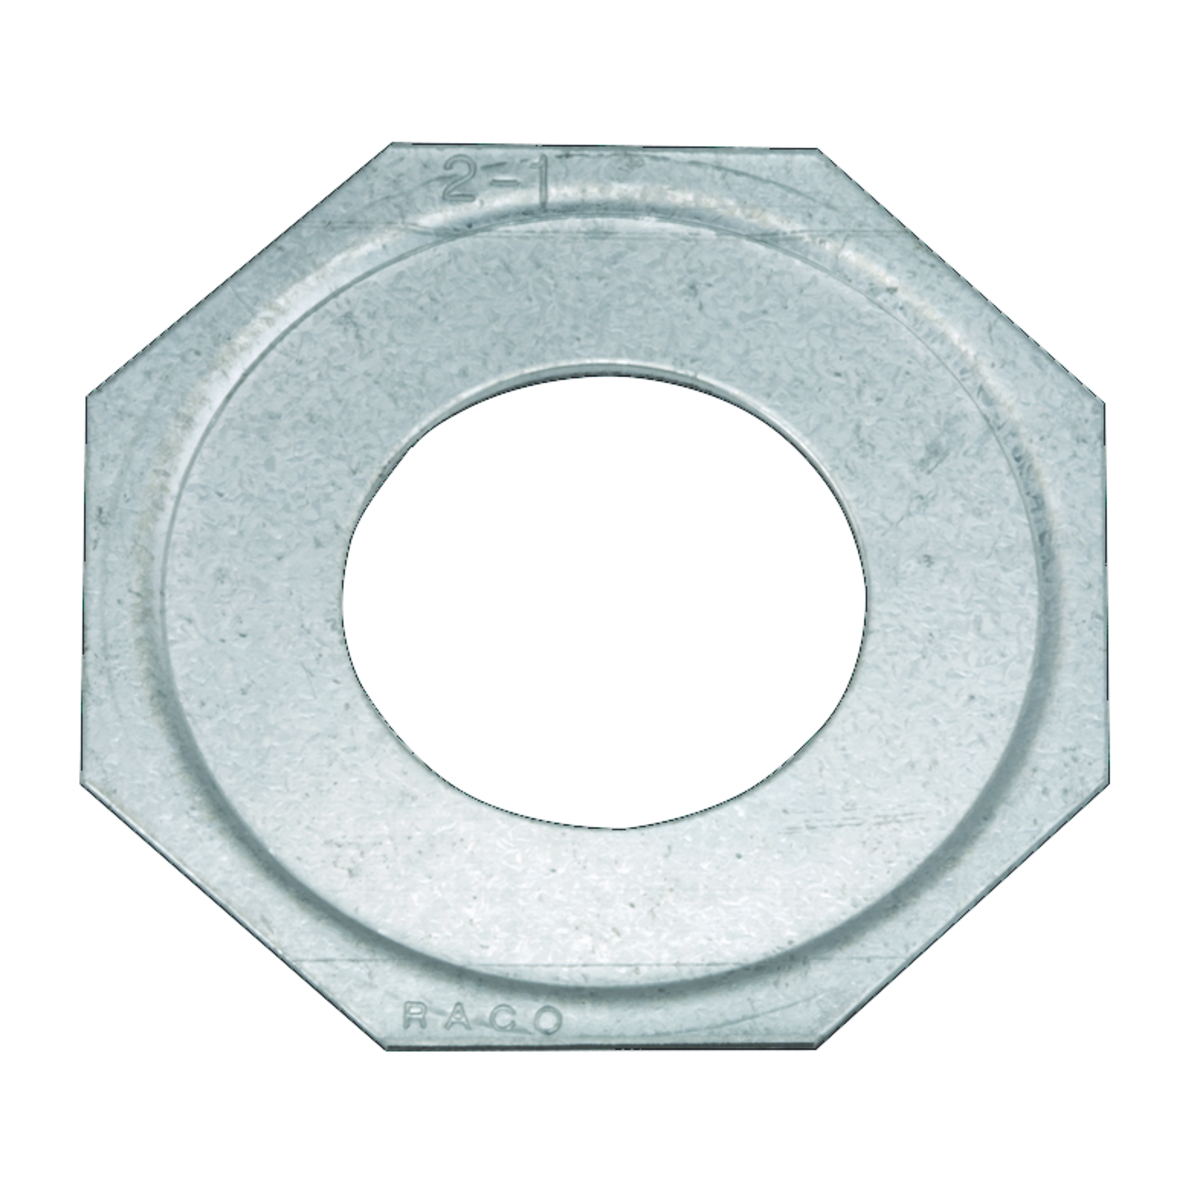 Hubbell-Raco 1379 Conduit Washer